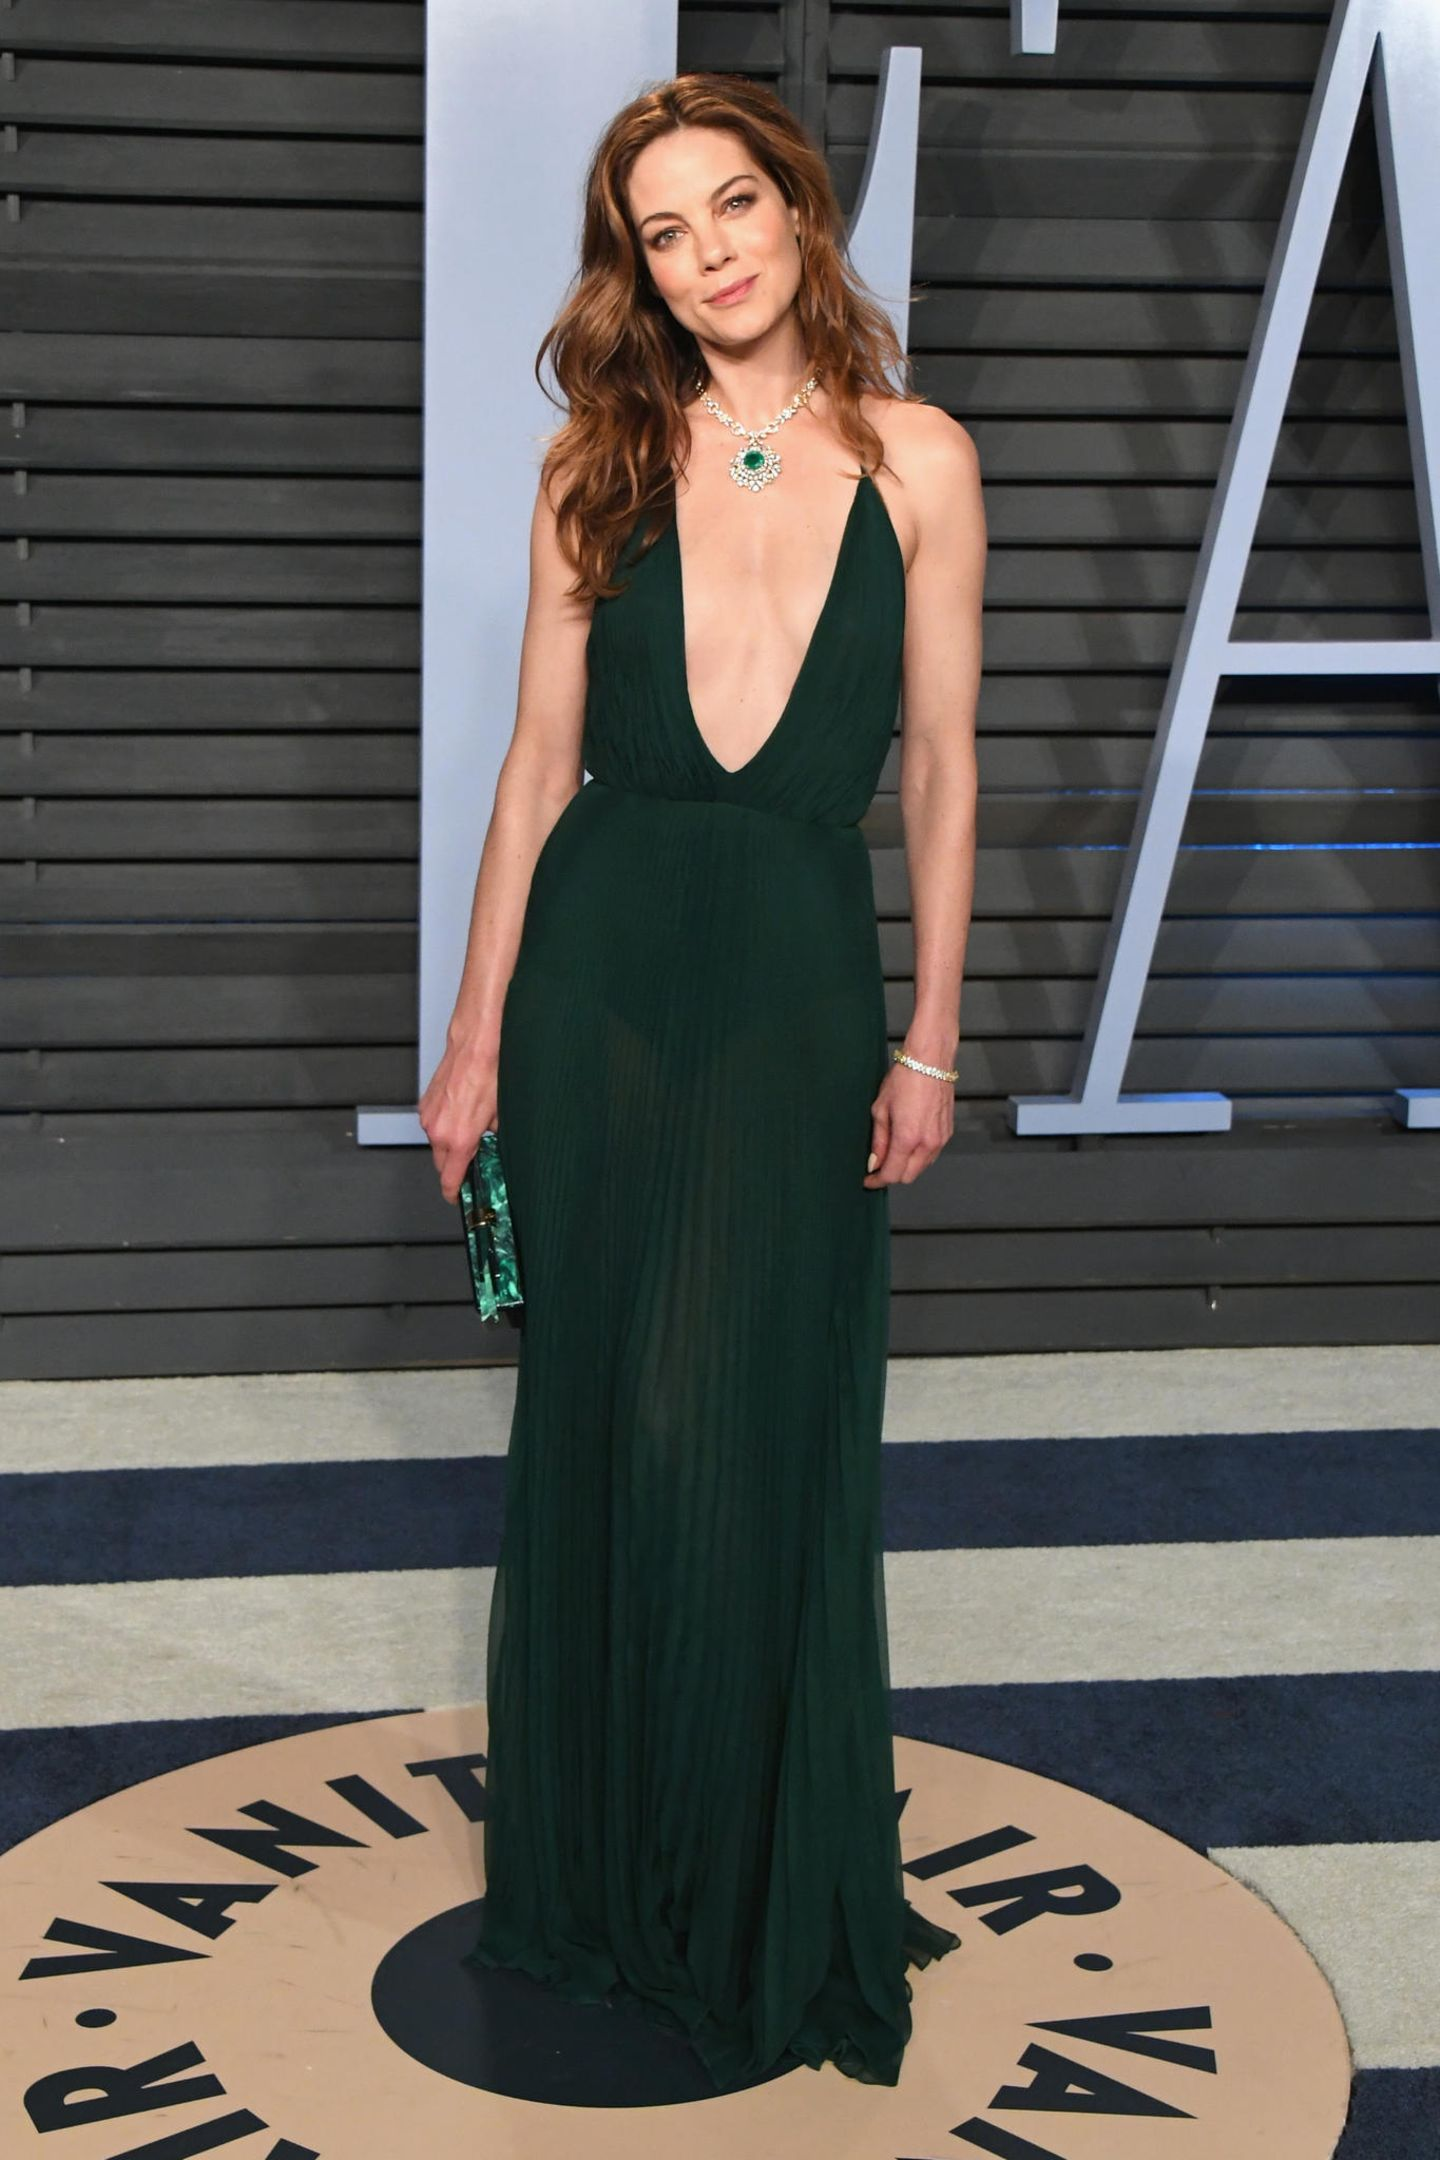 Michelle Monaghan in Reem Acra